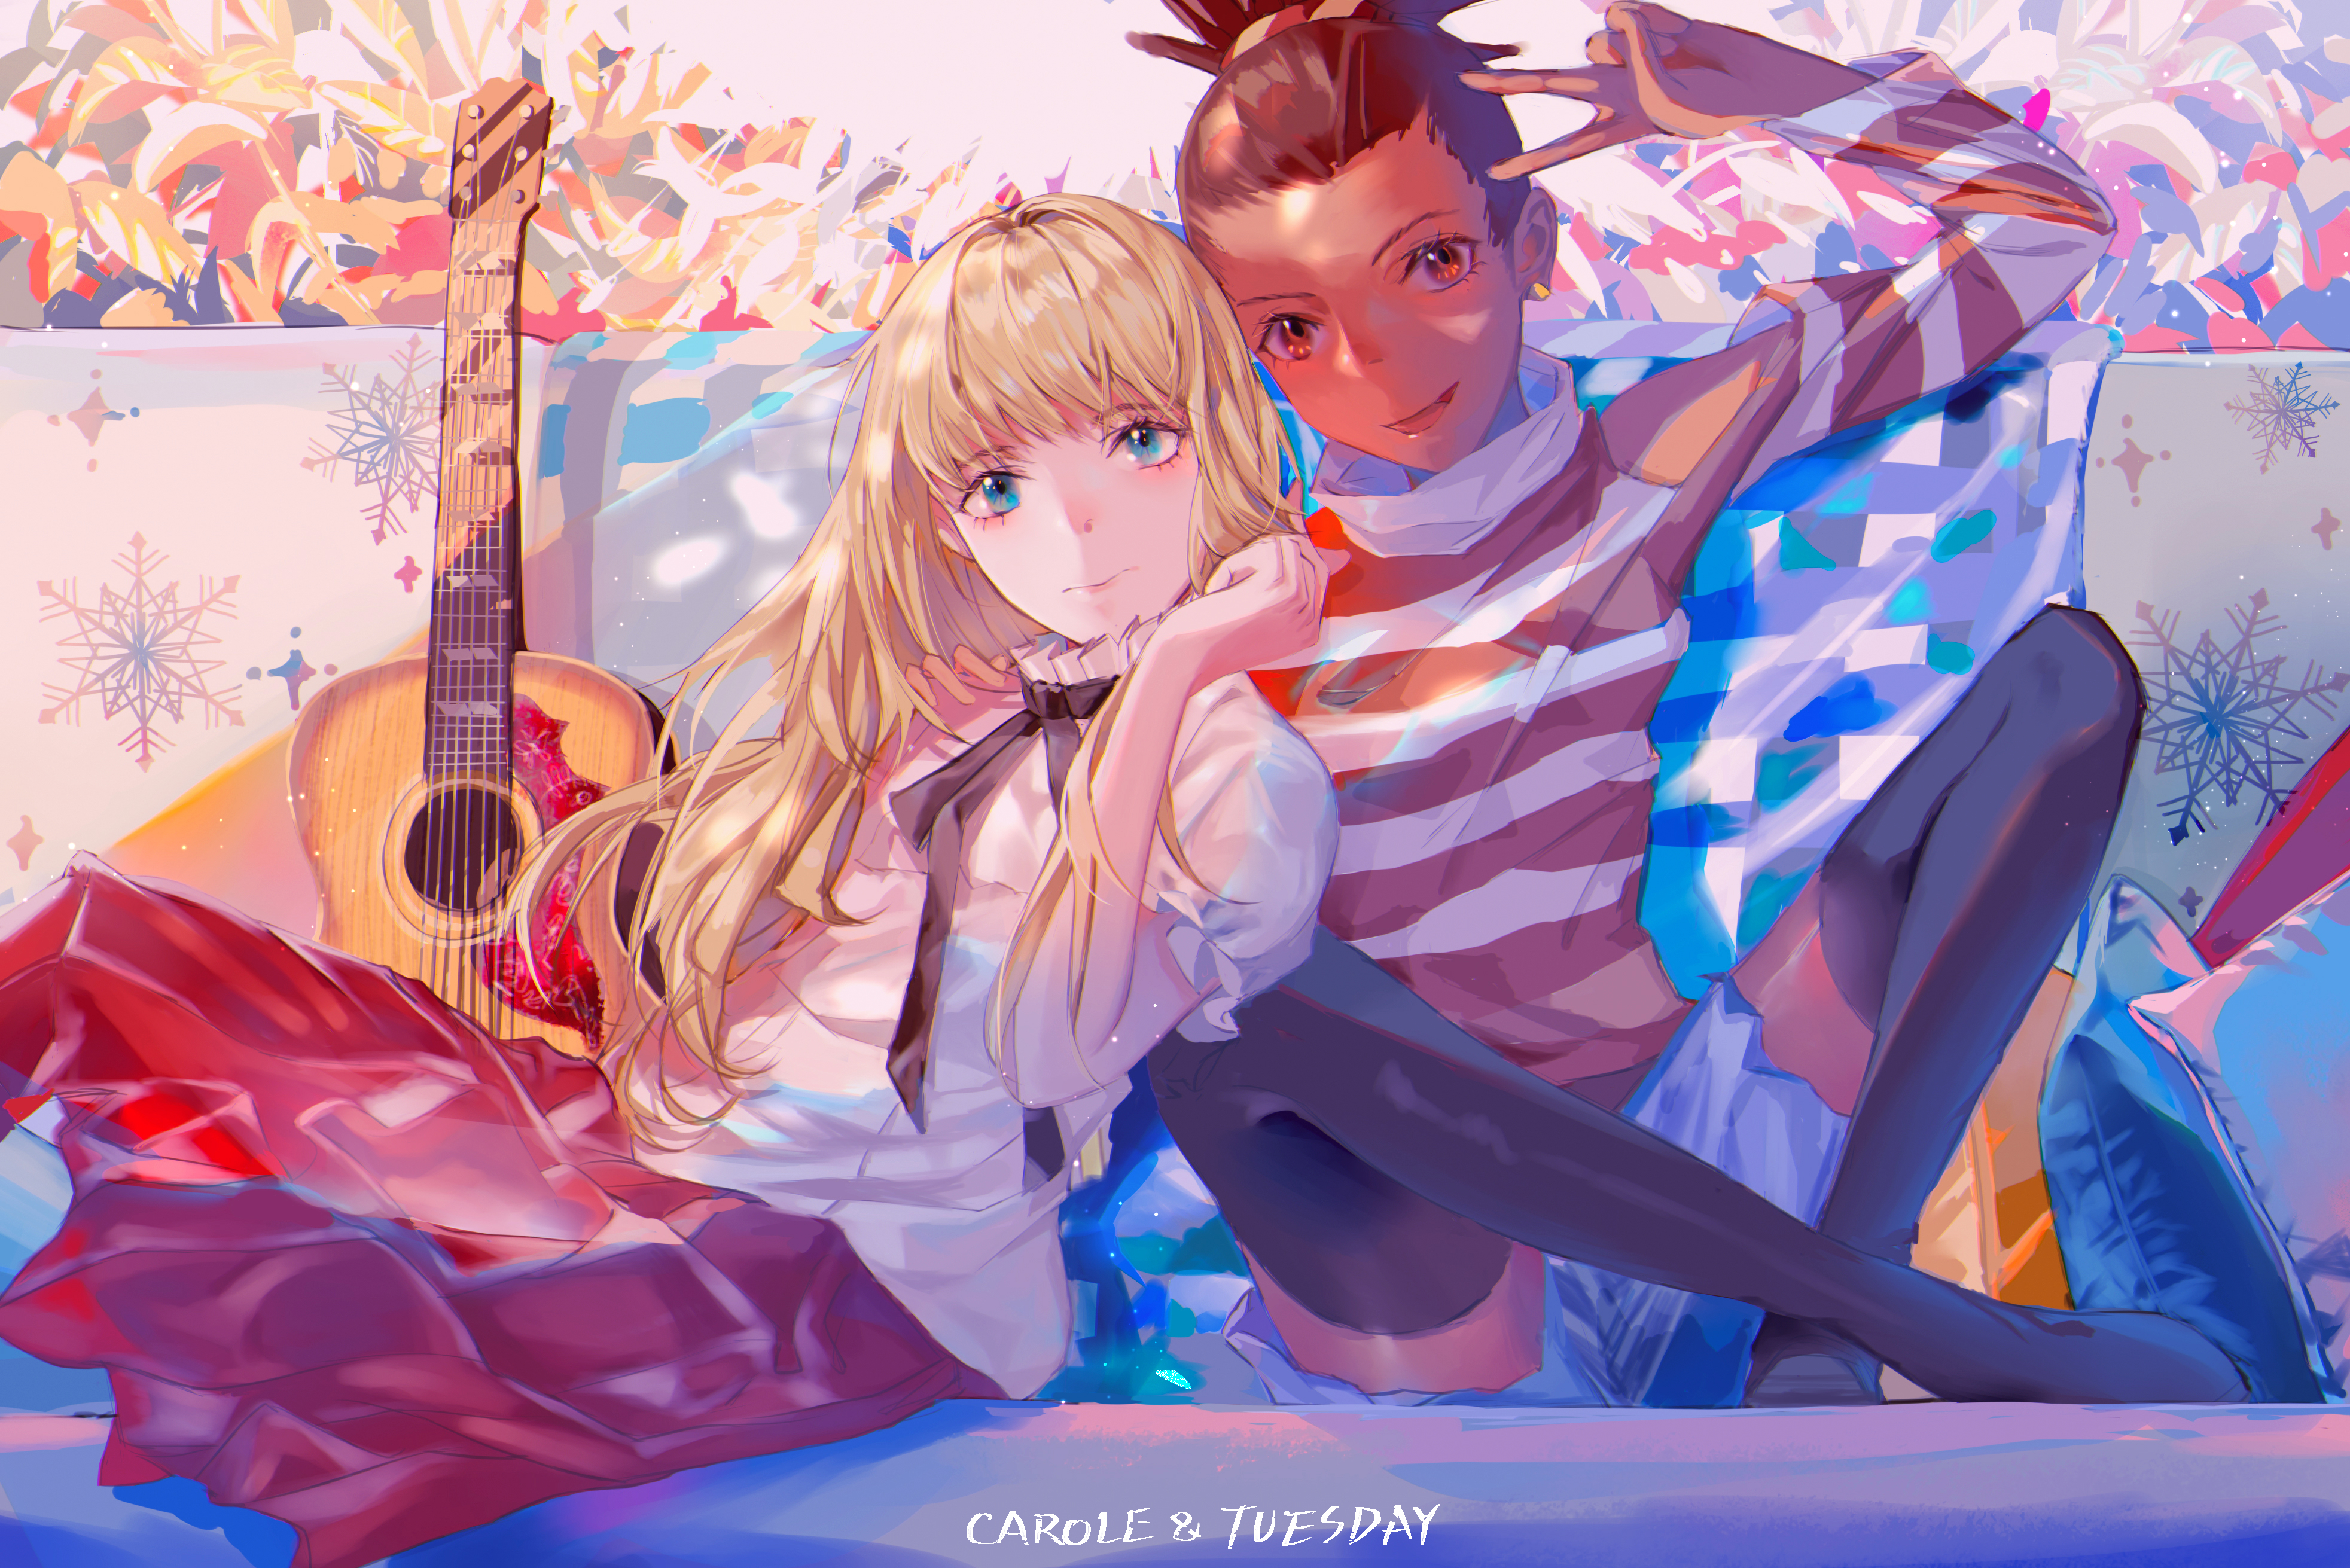 CAROLE & TUESDAY/Yusuriw